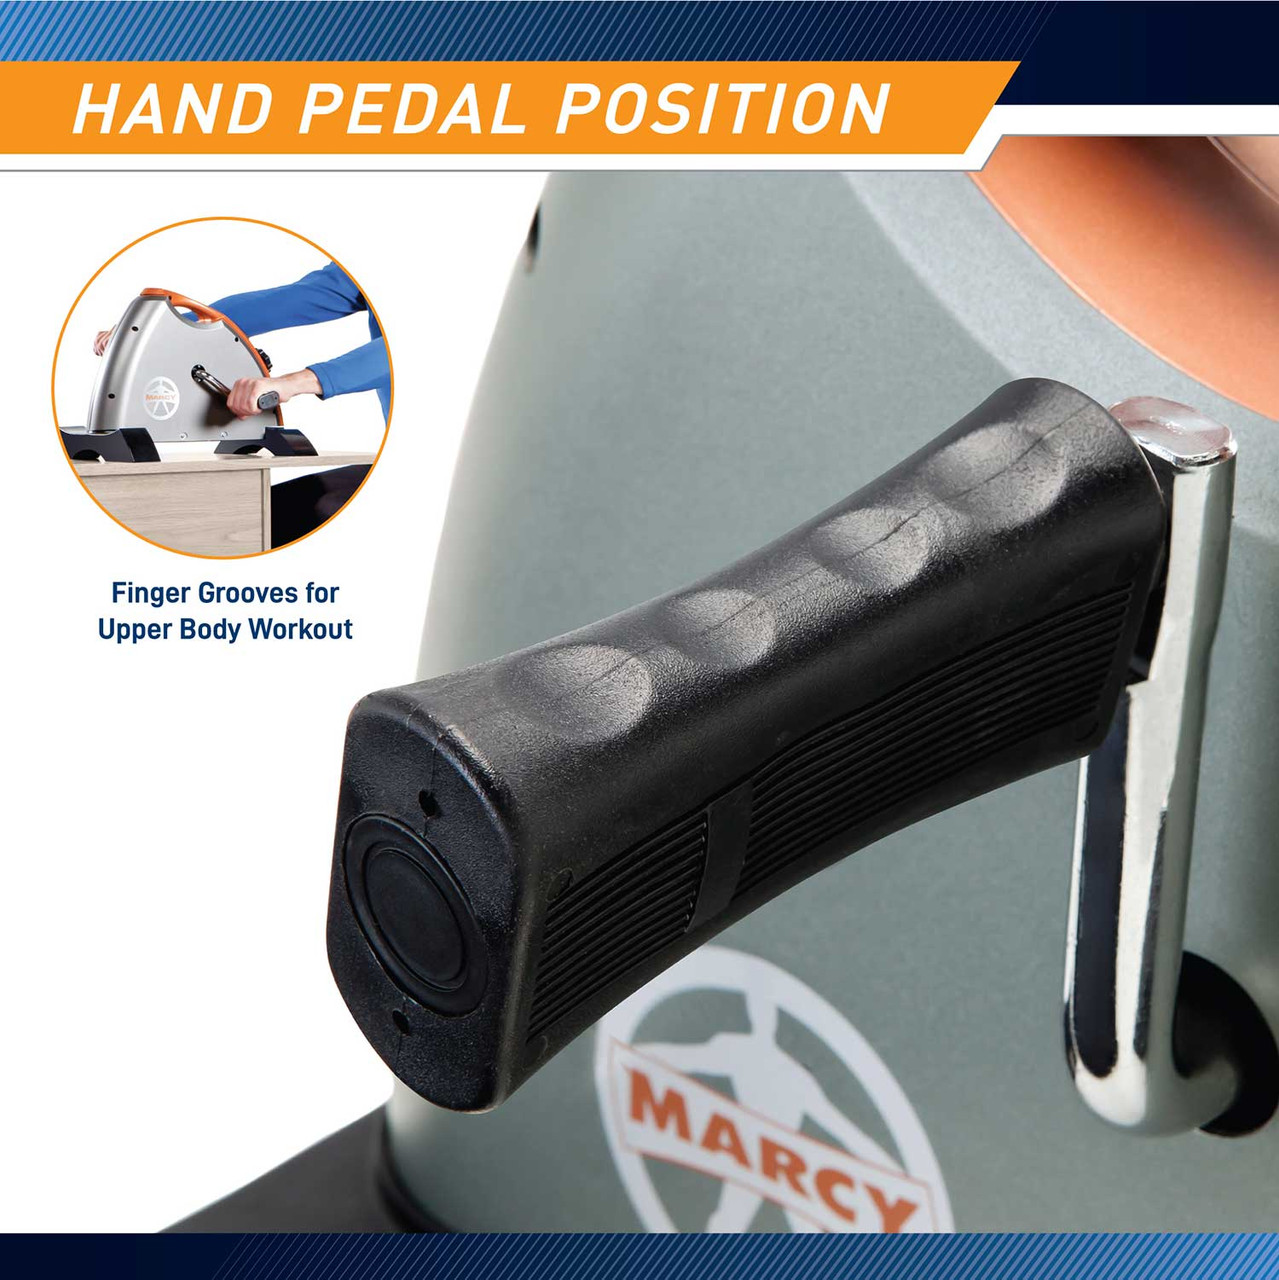 The Cardio Mini-Cycle NS-909 by Marcy includes a handle